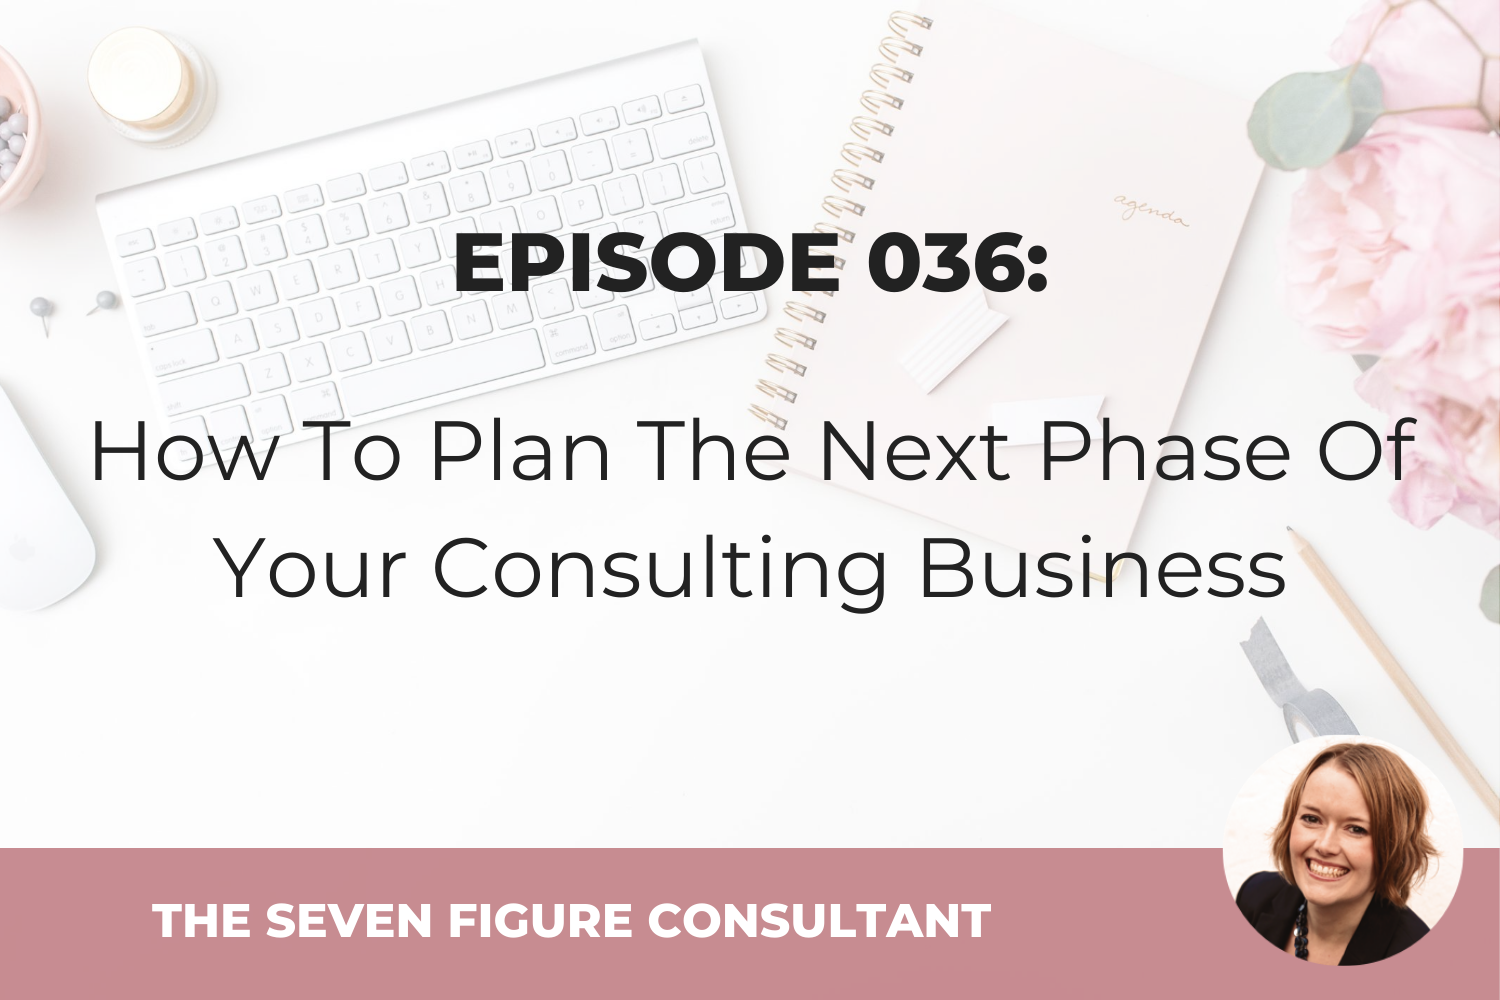 Episode 036: How To Plan The Next Phase Of Your Consulting Business